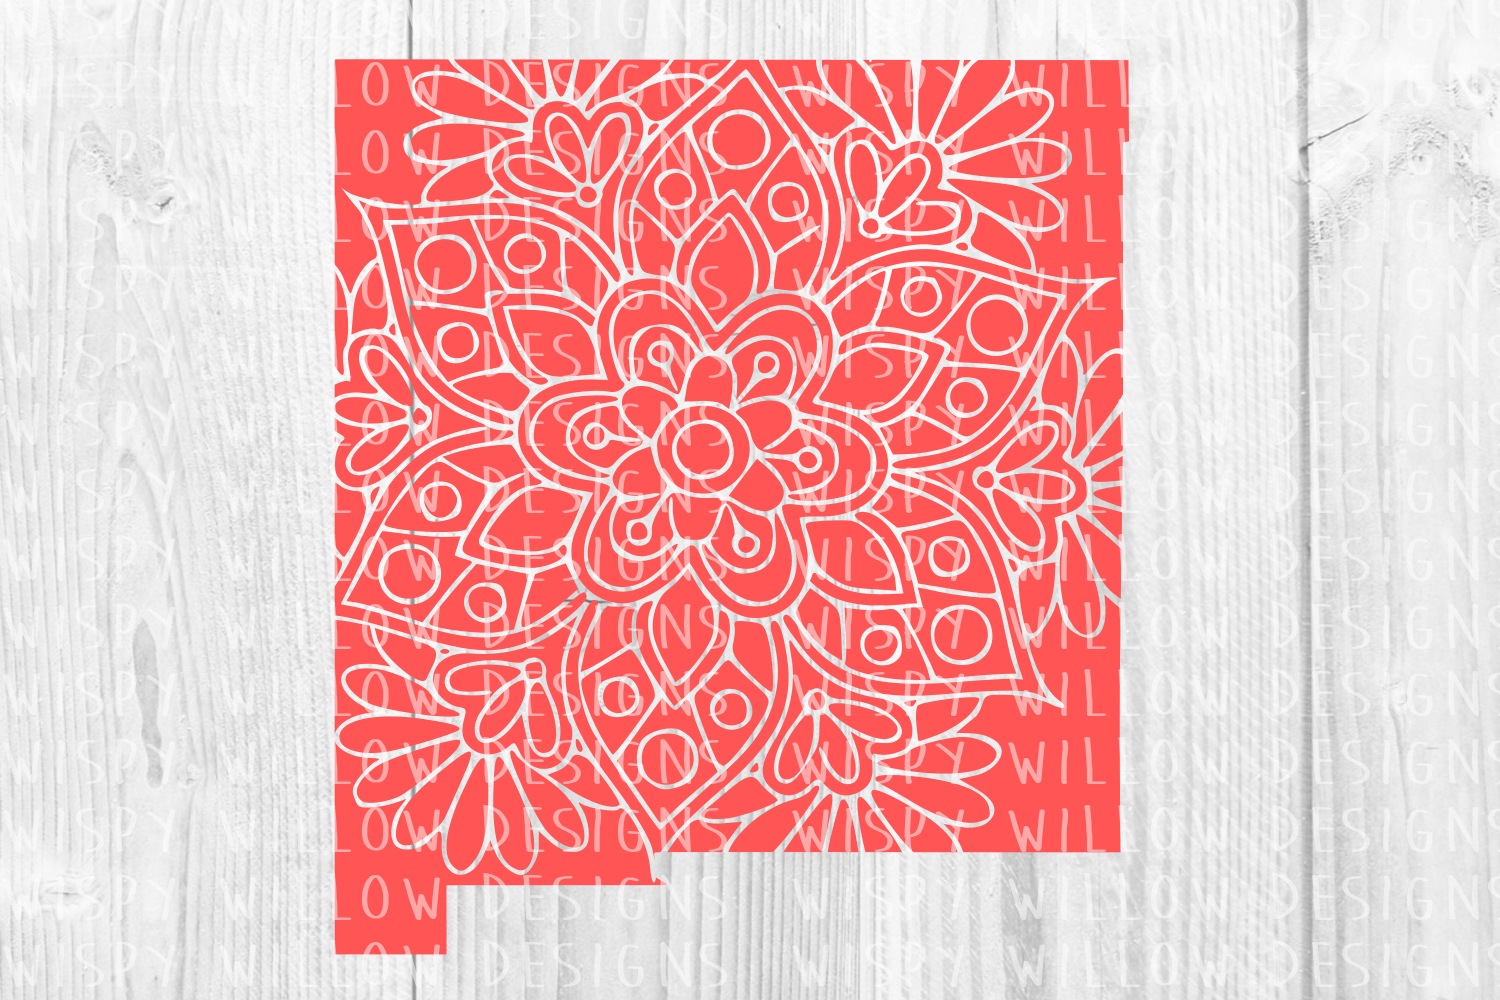 Download Free New Mexico Nm Floral Mandala State Cut File Graphic By for Cricut Explore, Silhouette and other cutting machines.